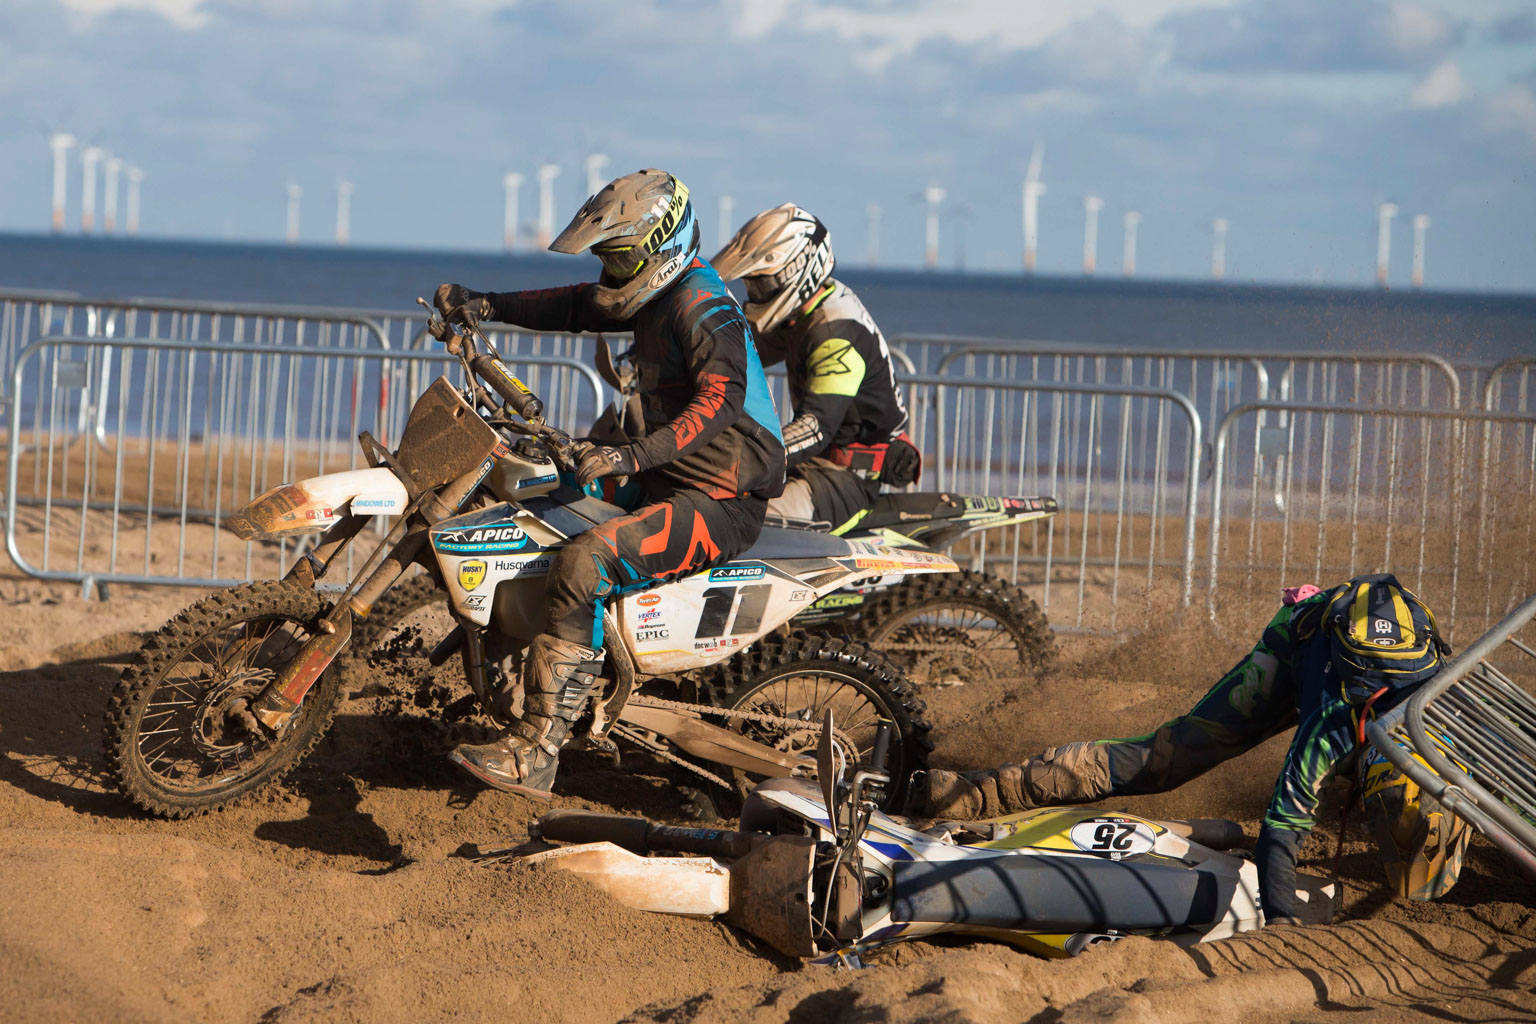 Matt Burrows (Husqvarna) and Alex Owen (Husqvarna)